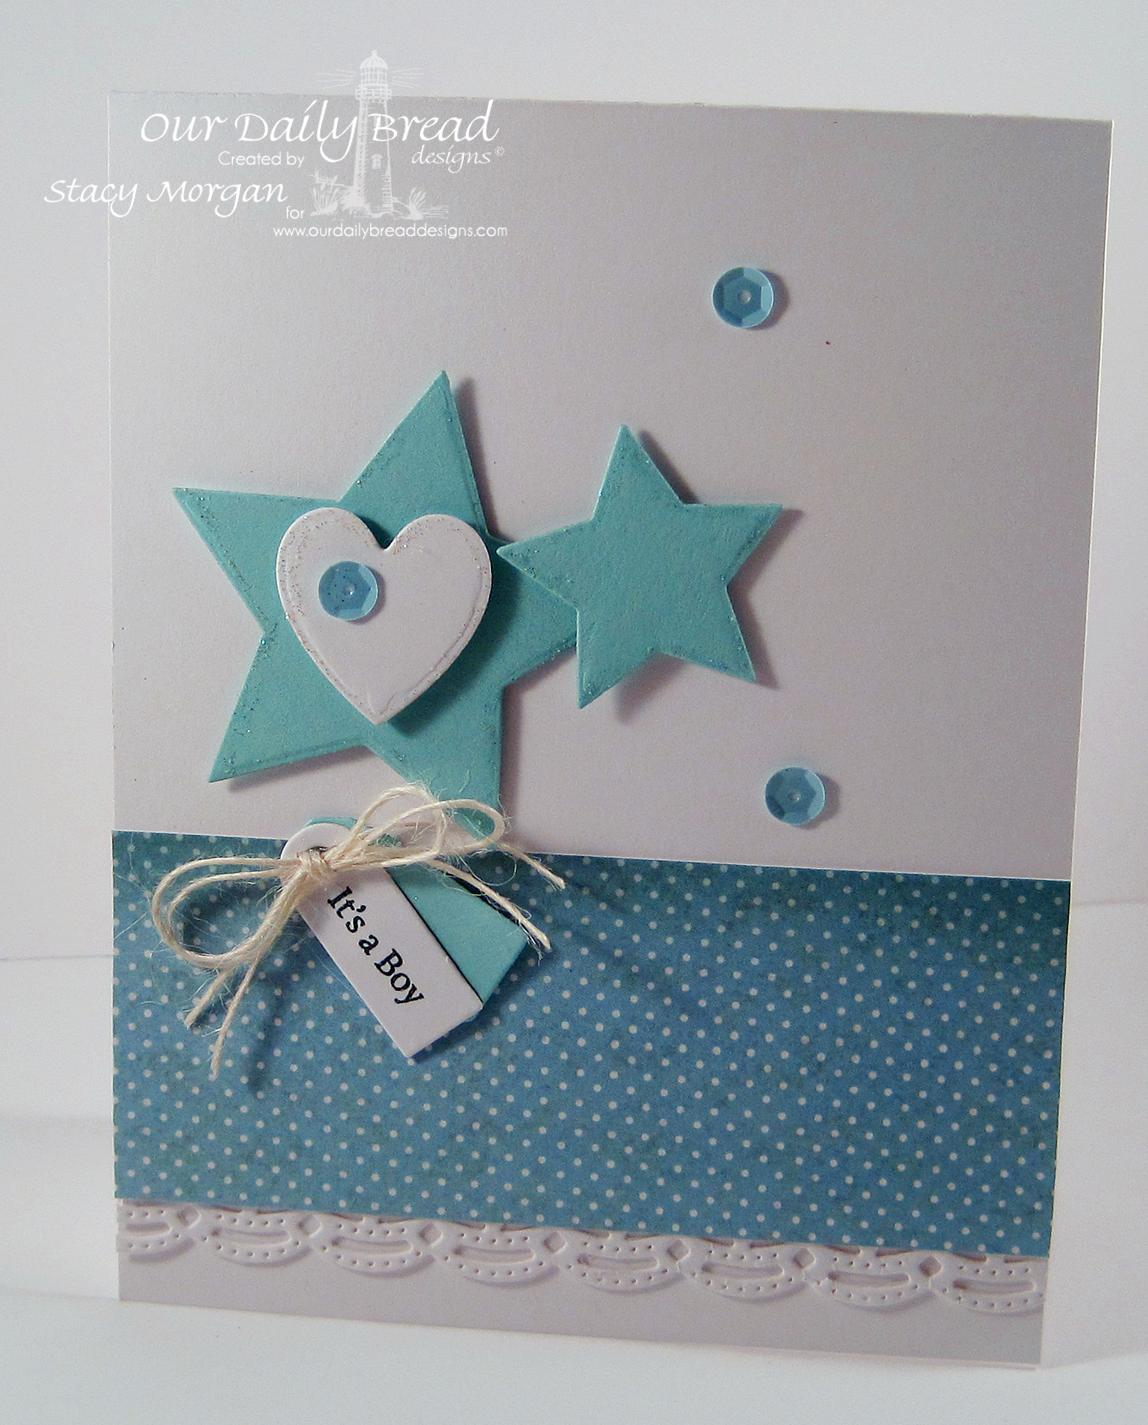 Stamps - Our Daily Bread Designs Mini Tag Sentiments, ODBD Custom Sparkling Stars Dies, ODBD Custom Beautiful Borders Die, ODBD Christmas Paper Collection 2014, ODBD Custom Mini Tags Dies